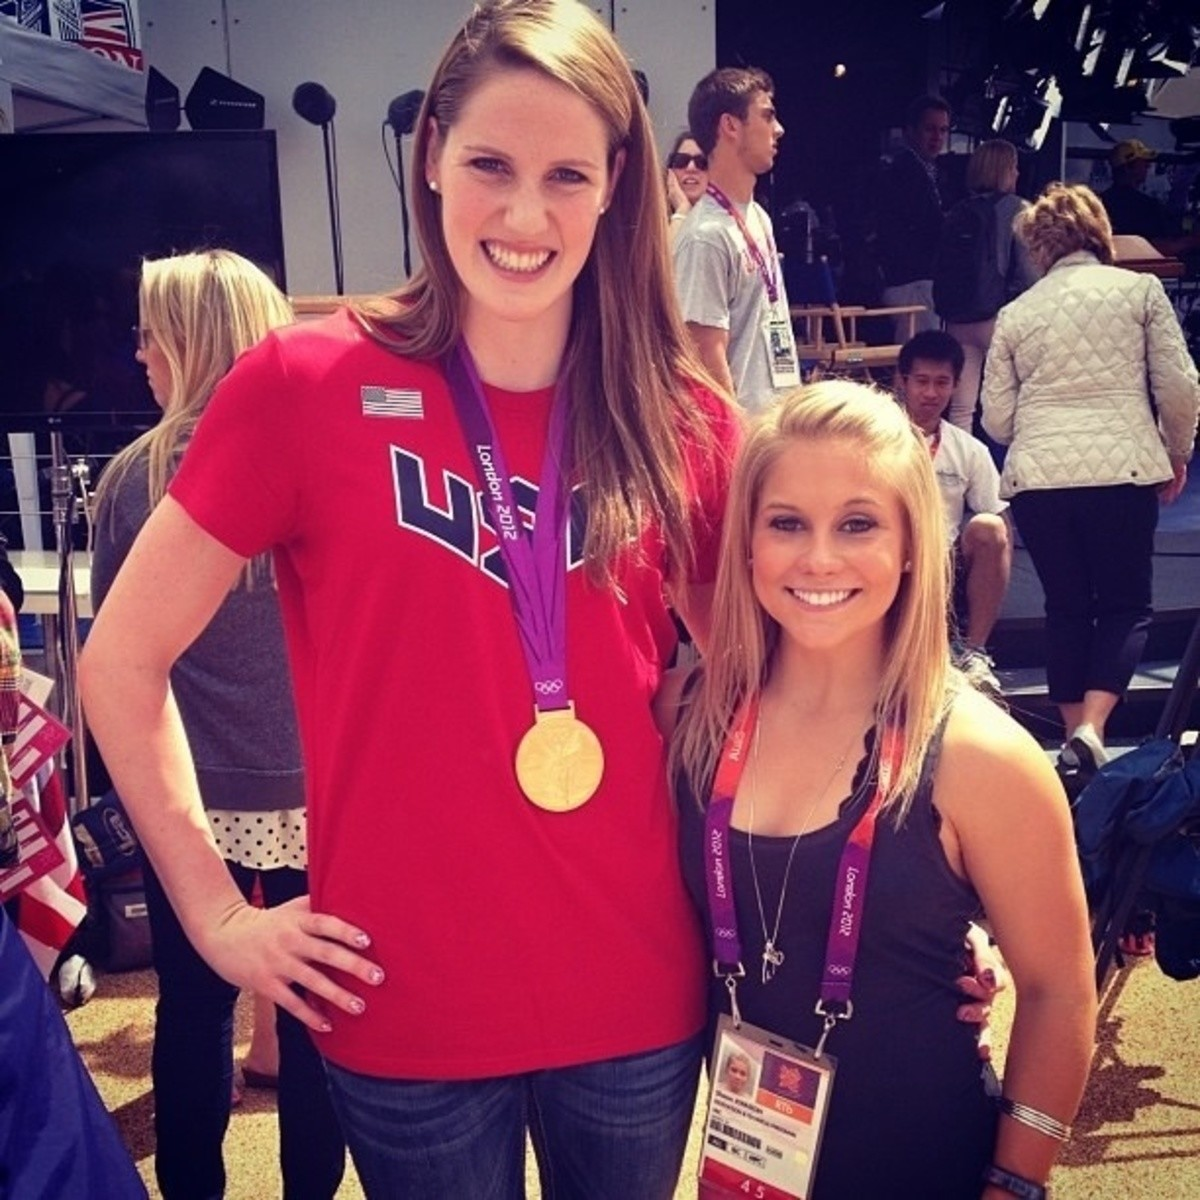 The difference between an Olympic swimmer and an Olympic gymnast. .. Everything is a dildo, if you're brave enough.